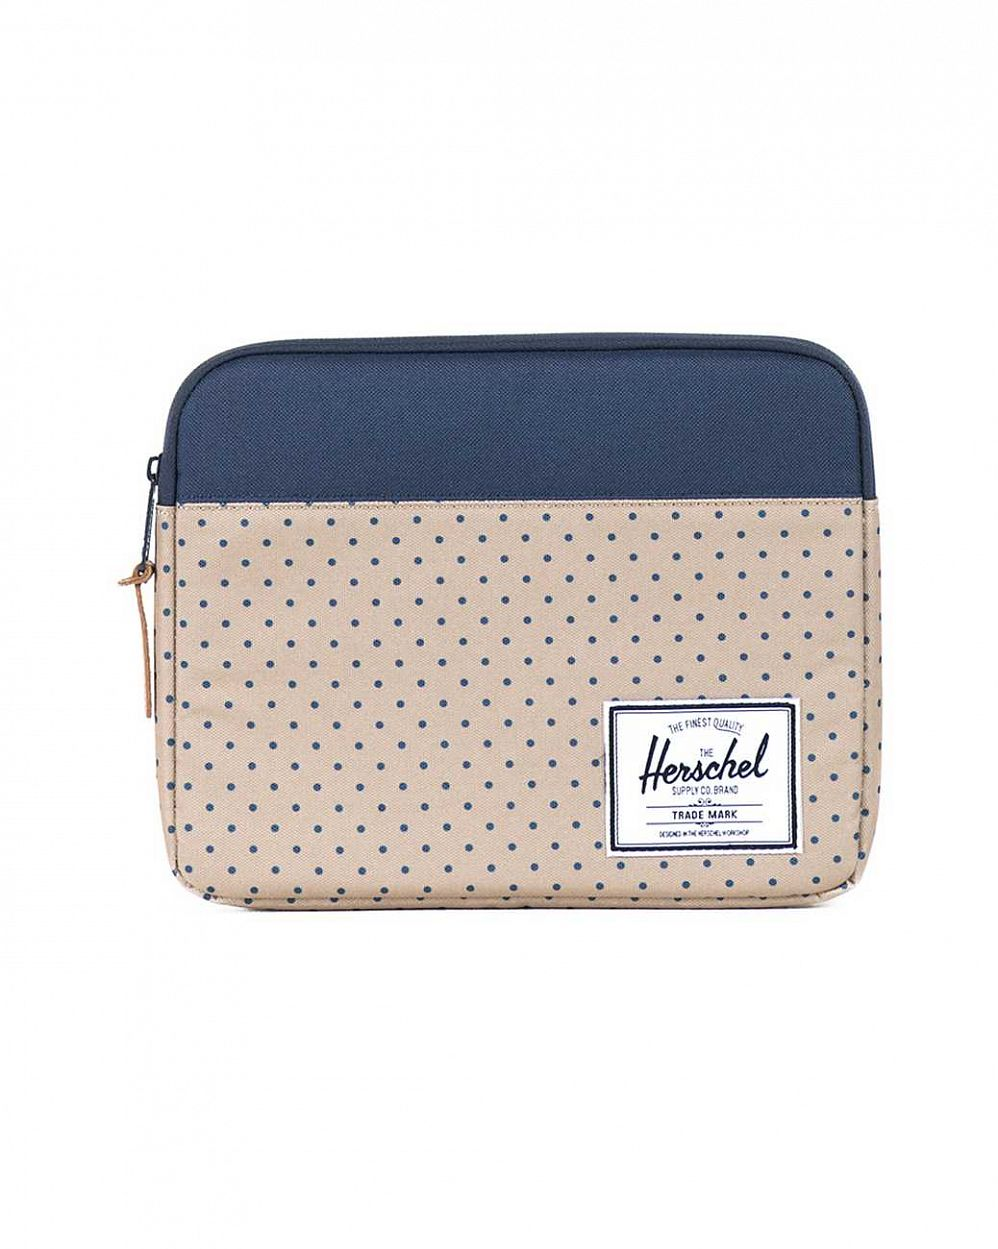 купить Чехол Herschel Anchor Sleeve для iPad Khaki Polka Dot Navy в Москве